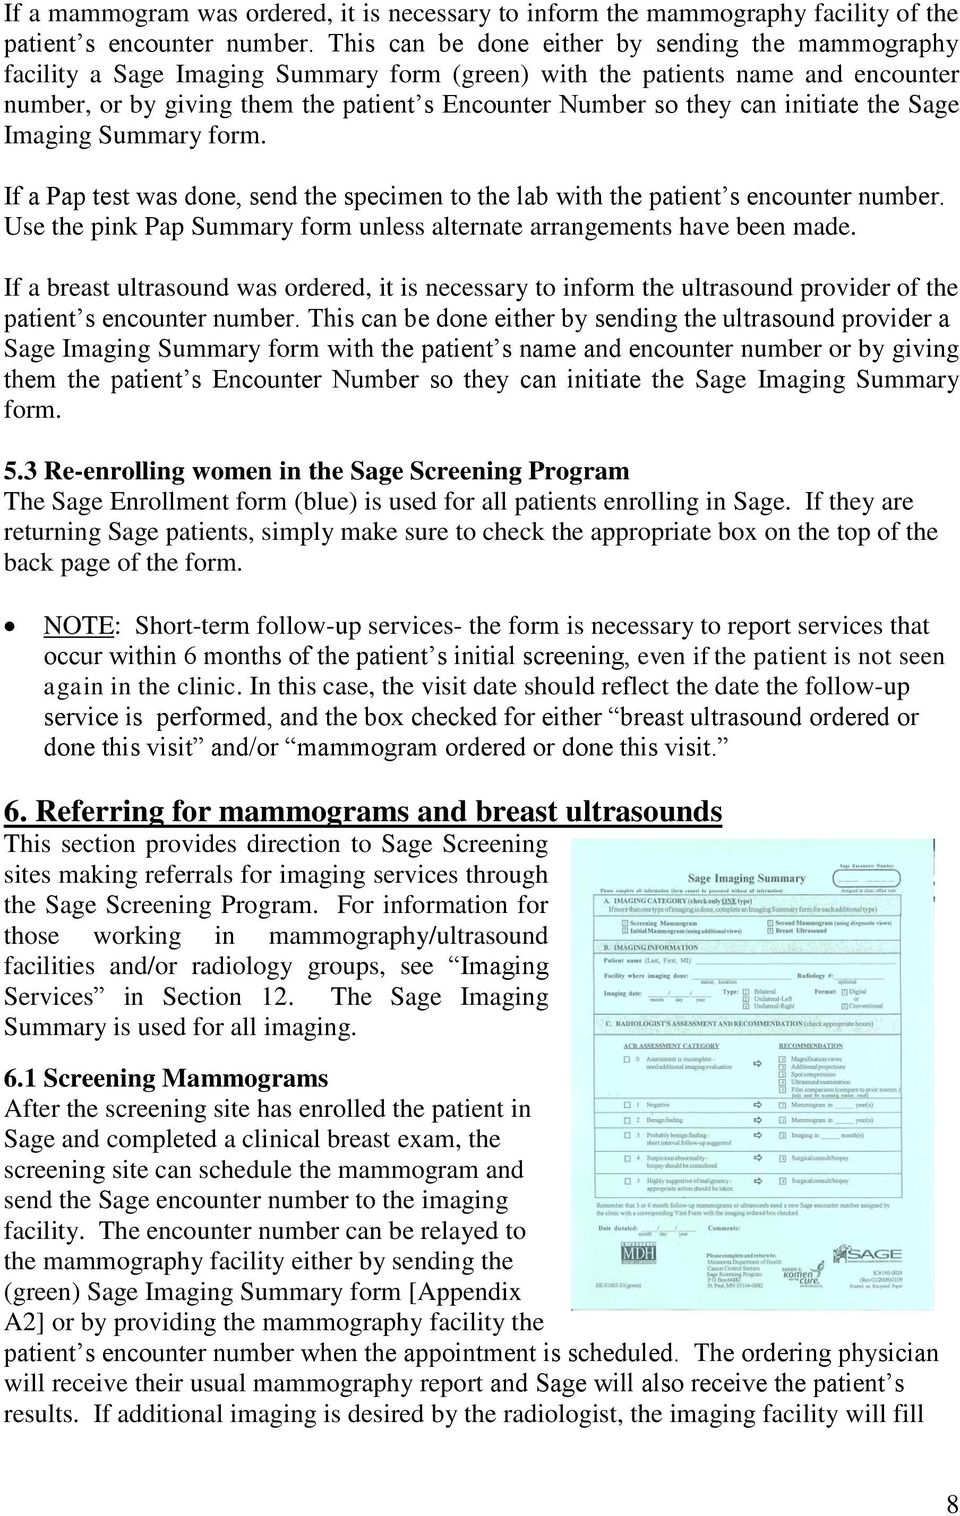 can initiate the Sage Imaging Summary form. If a Pap test was done, send the specimen to the lab with the patient s encounter number.